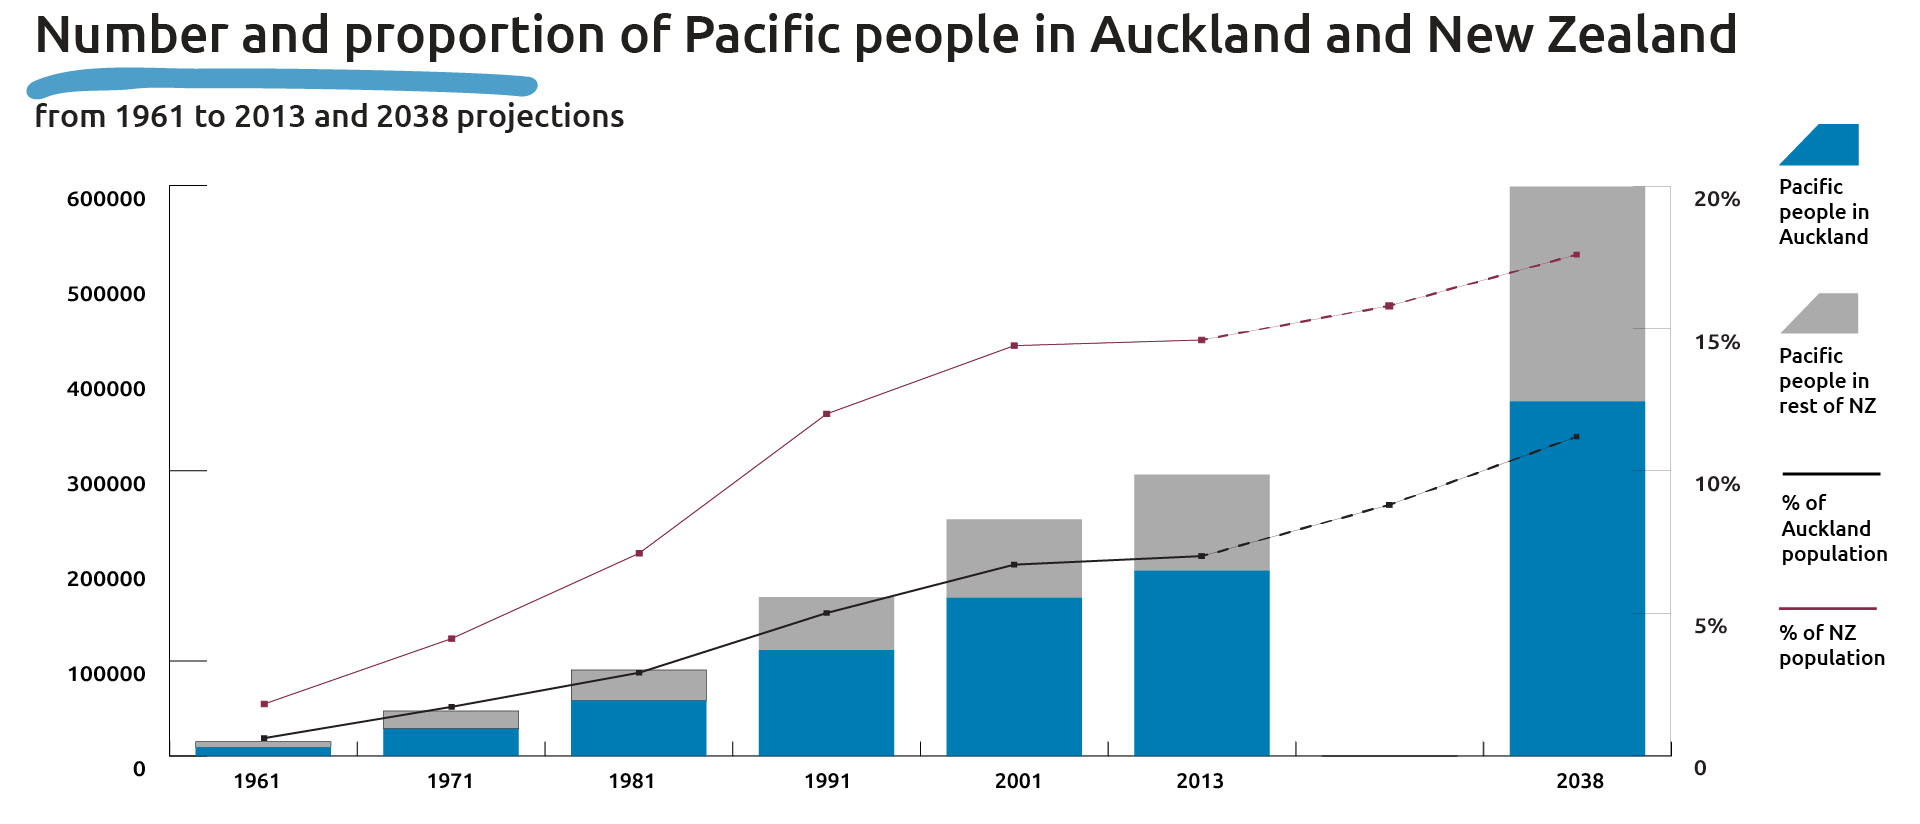 Graph shows the number and proportion of Pacific people in Auckland and New Zealand, 1961 to 2013 and the 2038 projections.